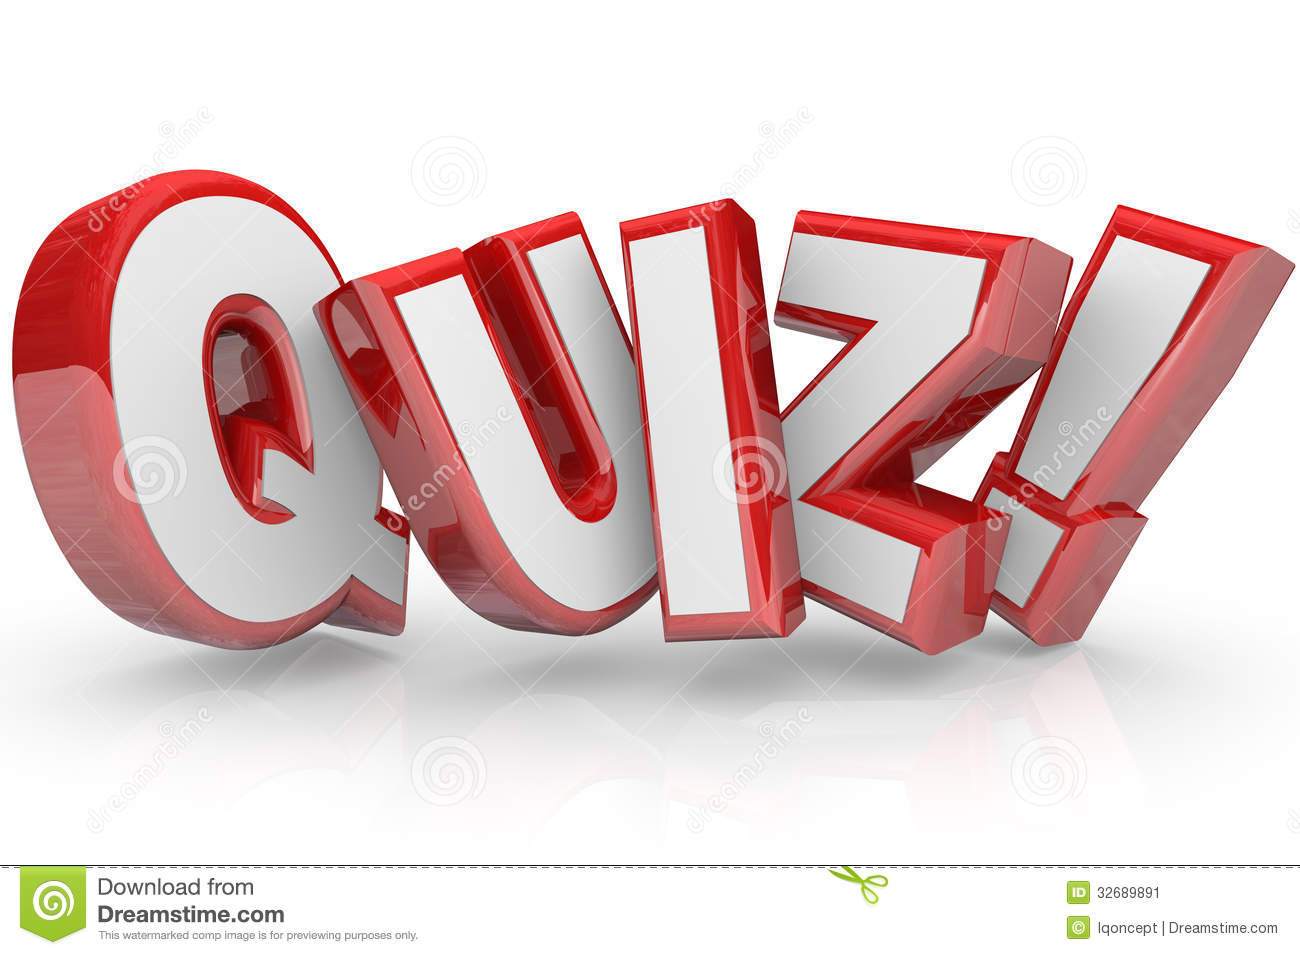 Quiz Red 3D Word Test Exam Assessment Stock Image - Image: 32689891